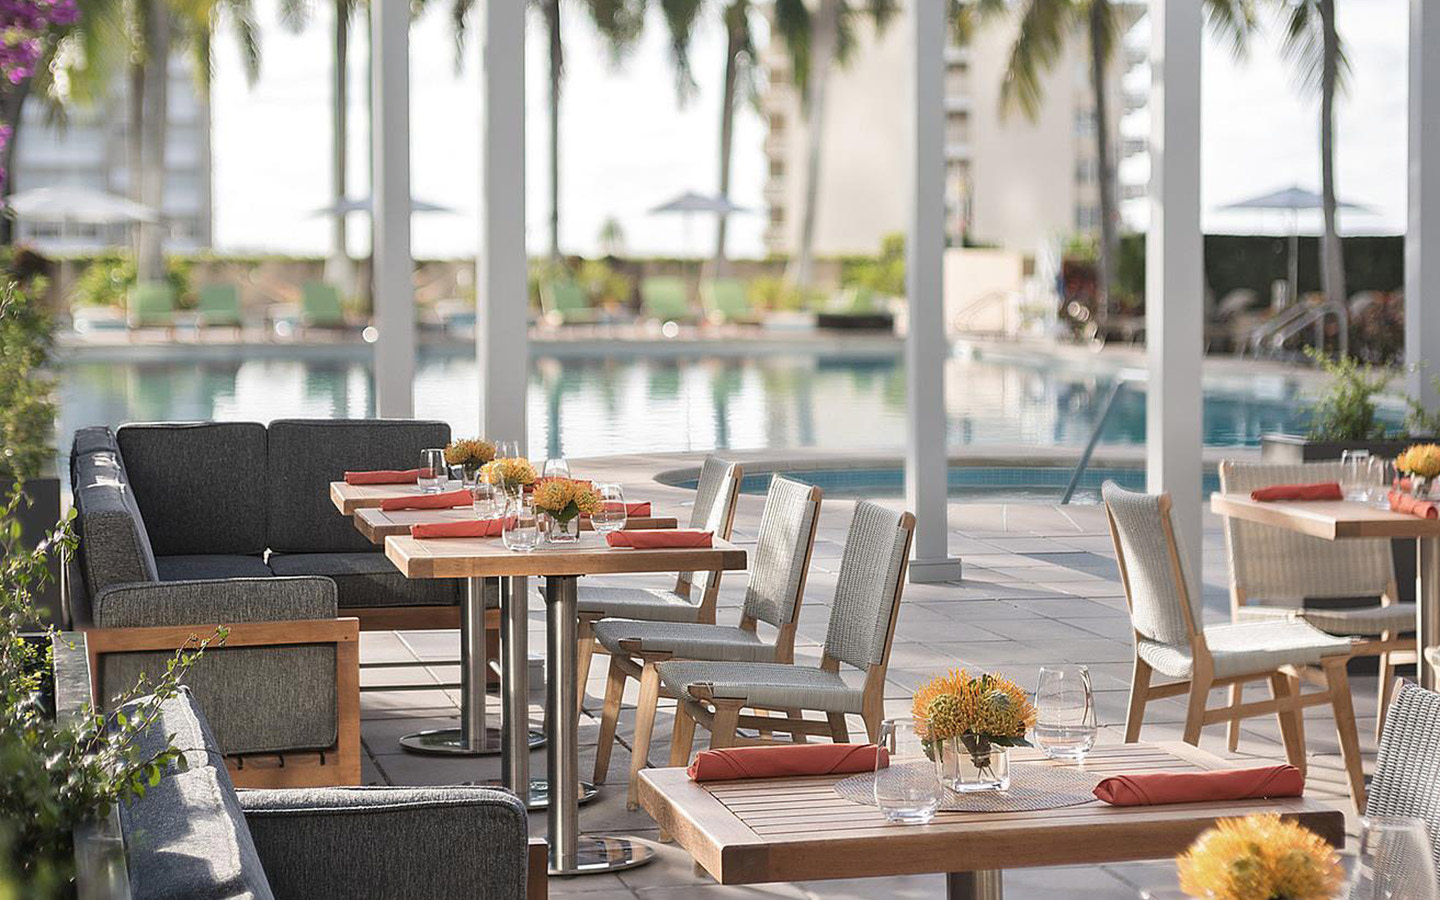 Bahia Poolside Restaurant and Sunset Lounge